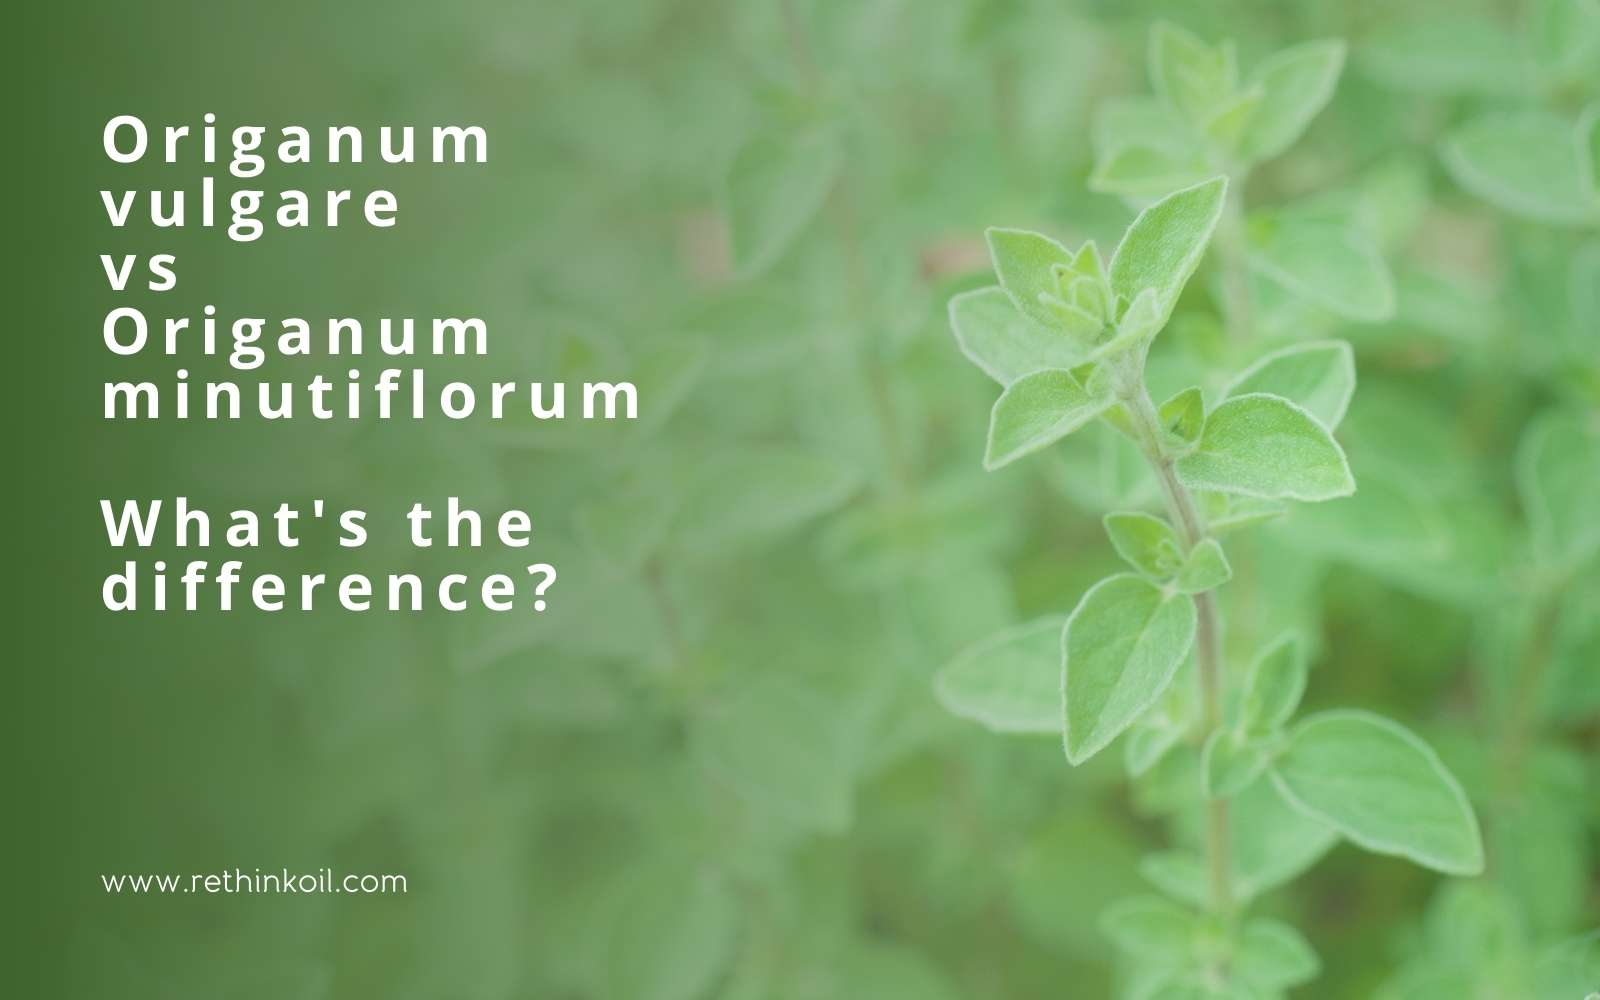 ReThinkOil Origanum vulgare vs Origanum minutiflorum What's the Difference? Blog Post